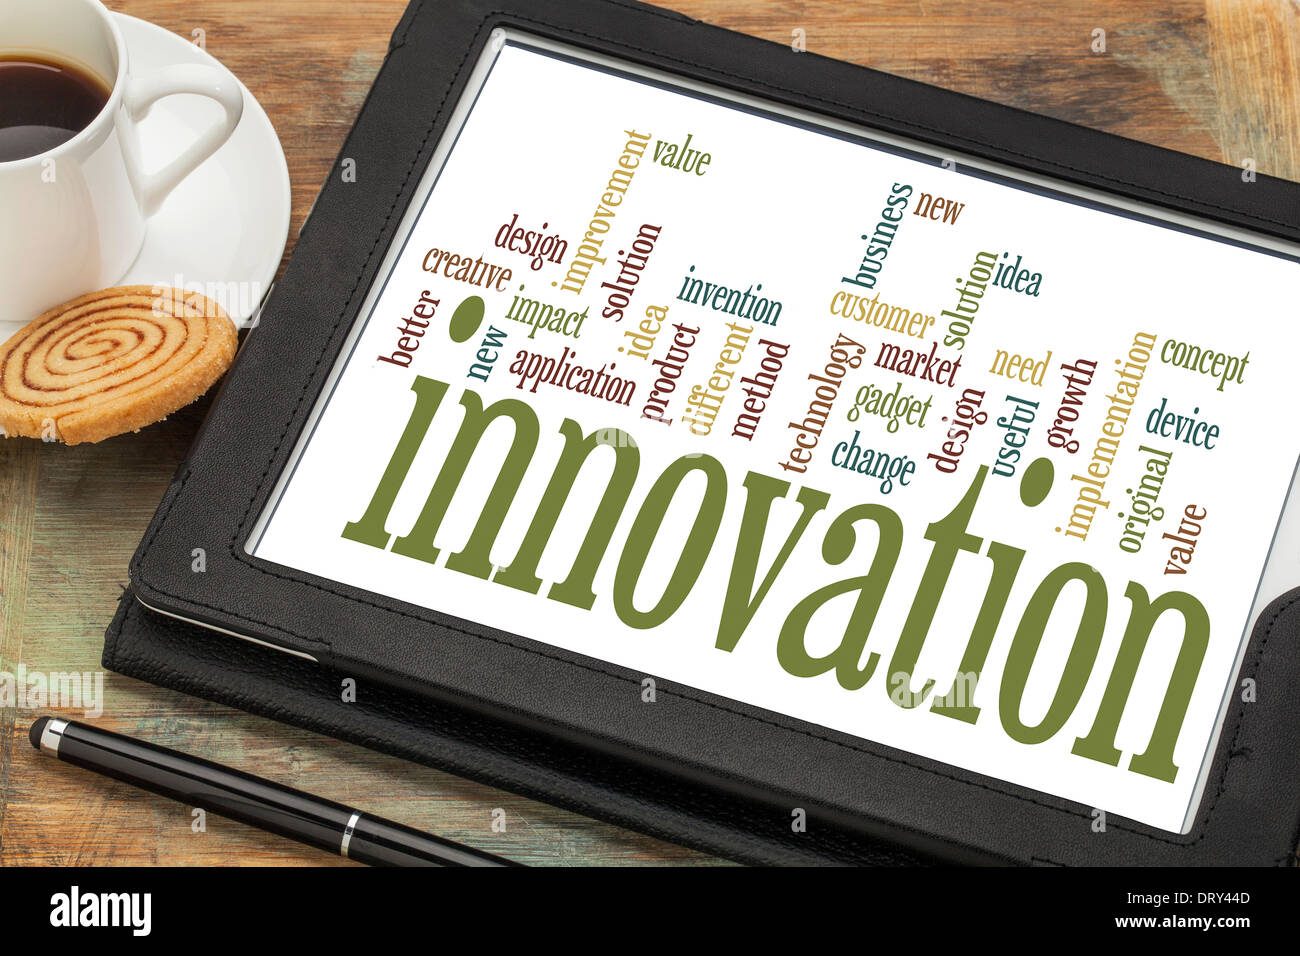 innovation concept - word cloud on a digital tablet with a cup of coffee - Stock Image